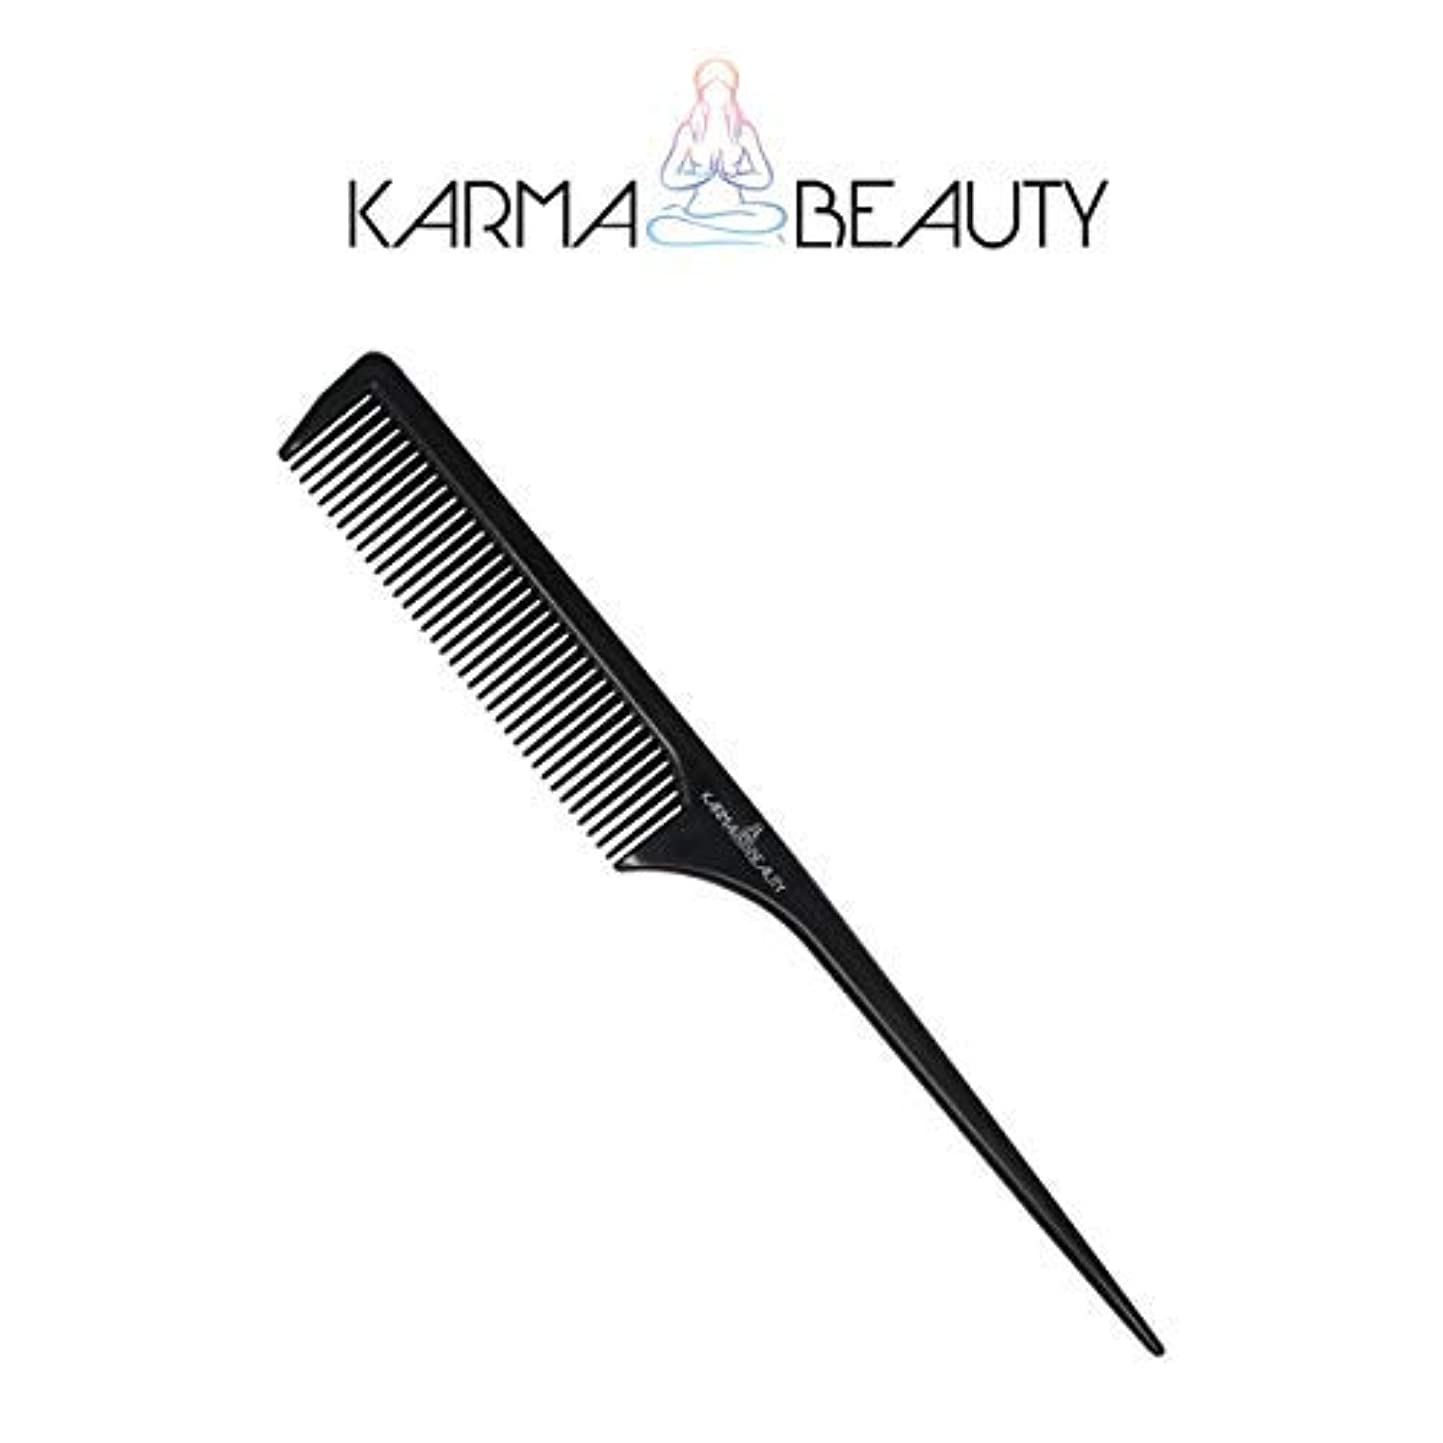 Tail Comb | Fine Tooth Hair Comb | Thin and Long Handle | Teasing Comb | For All Hair Type | Karma Beauty | (Black...